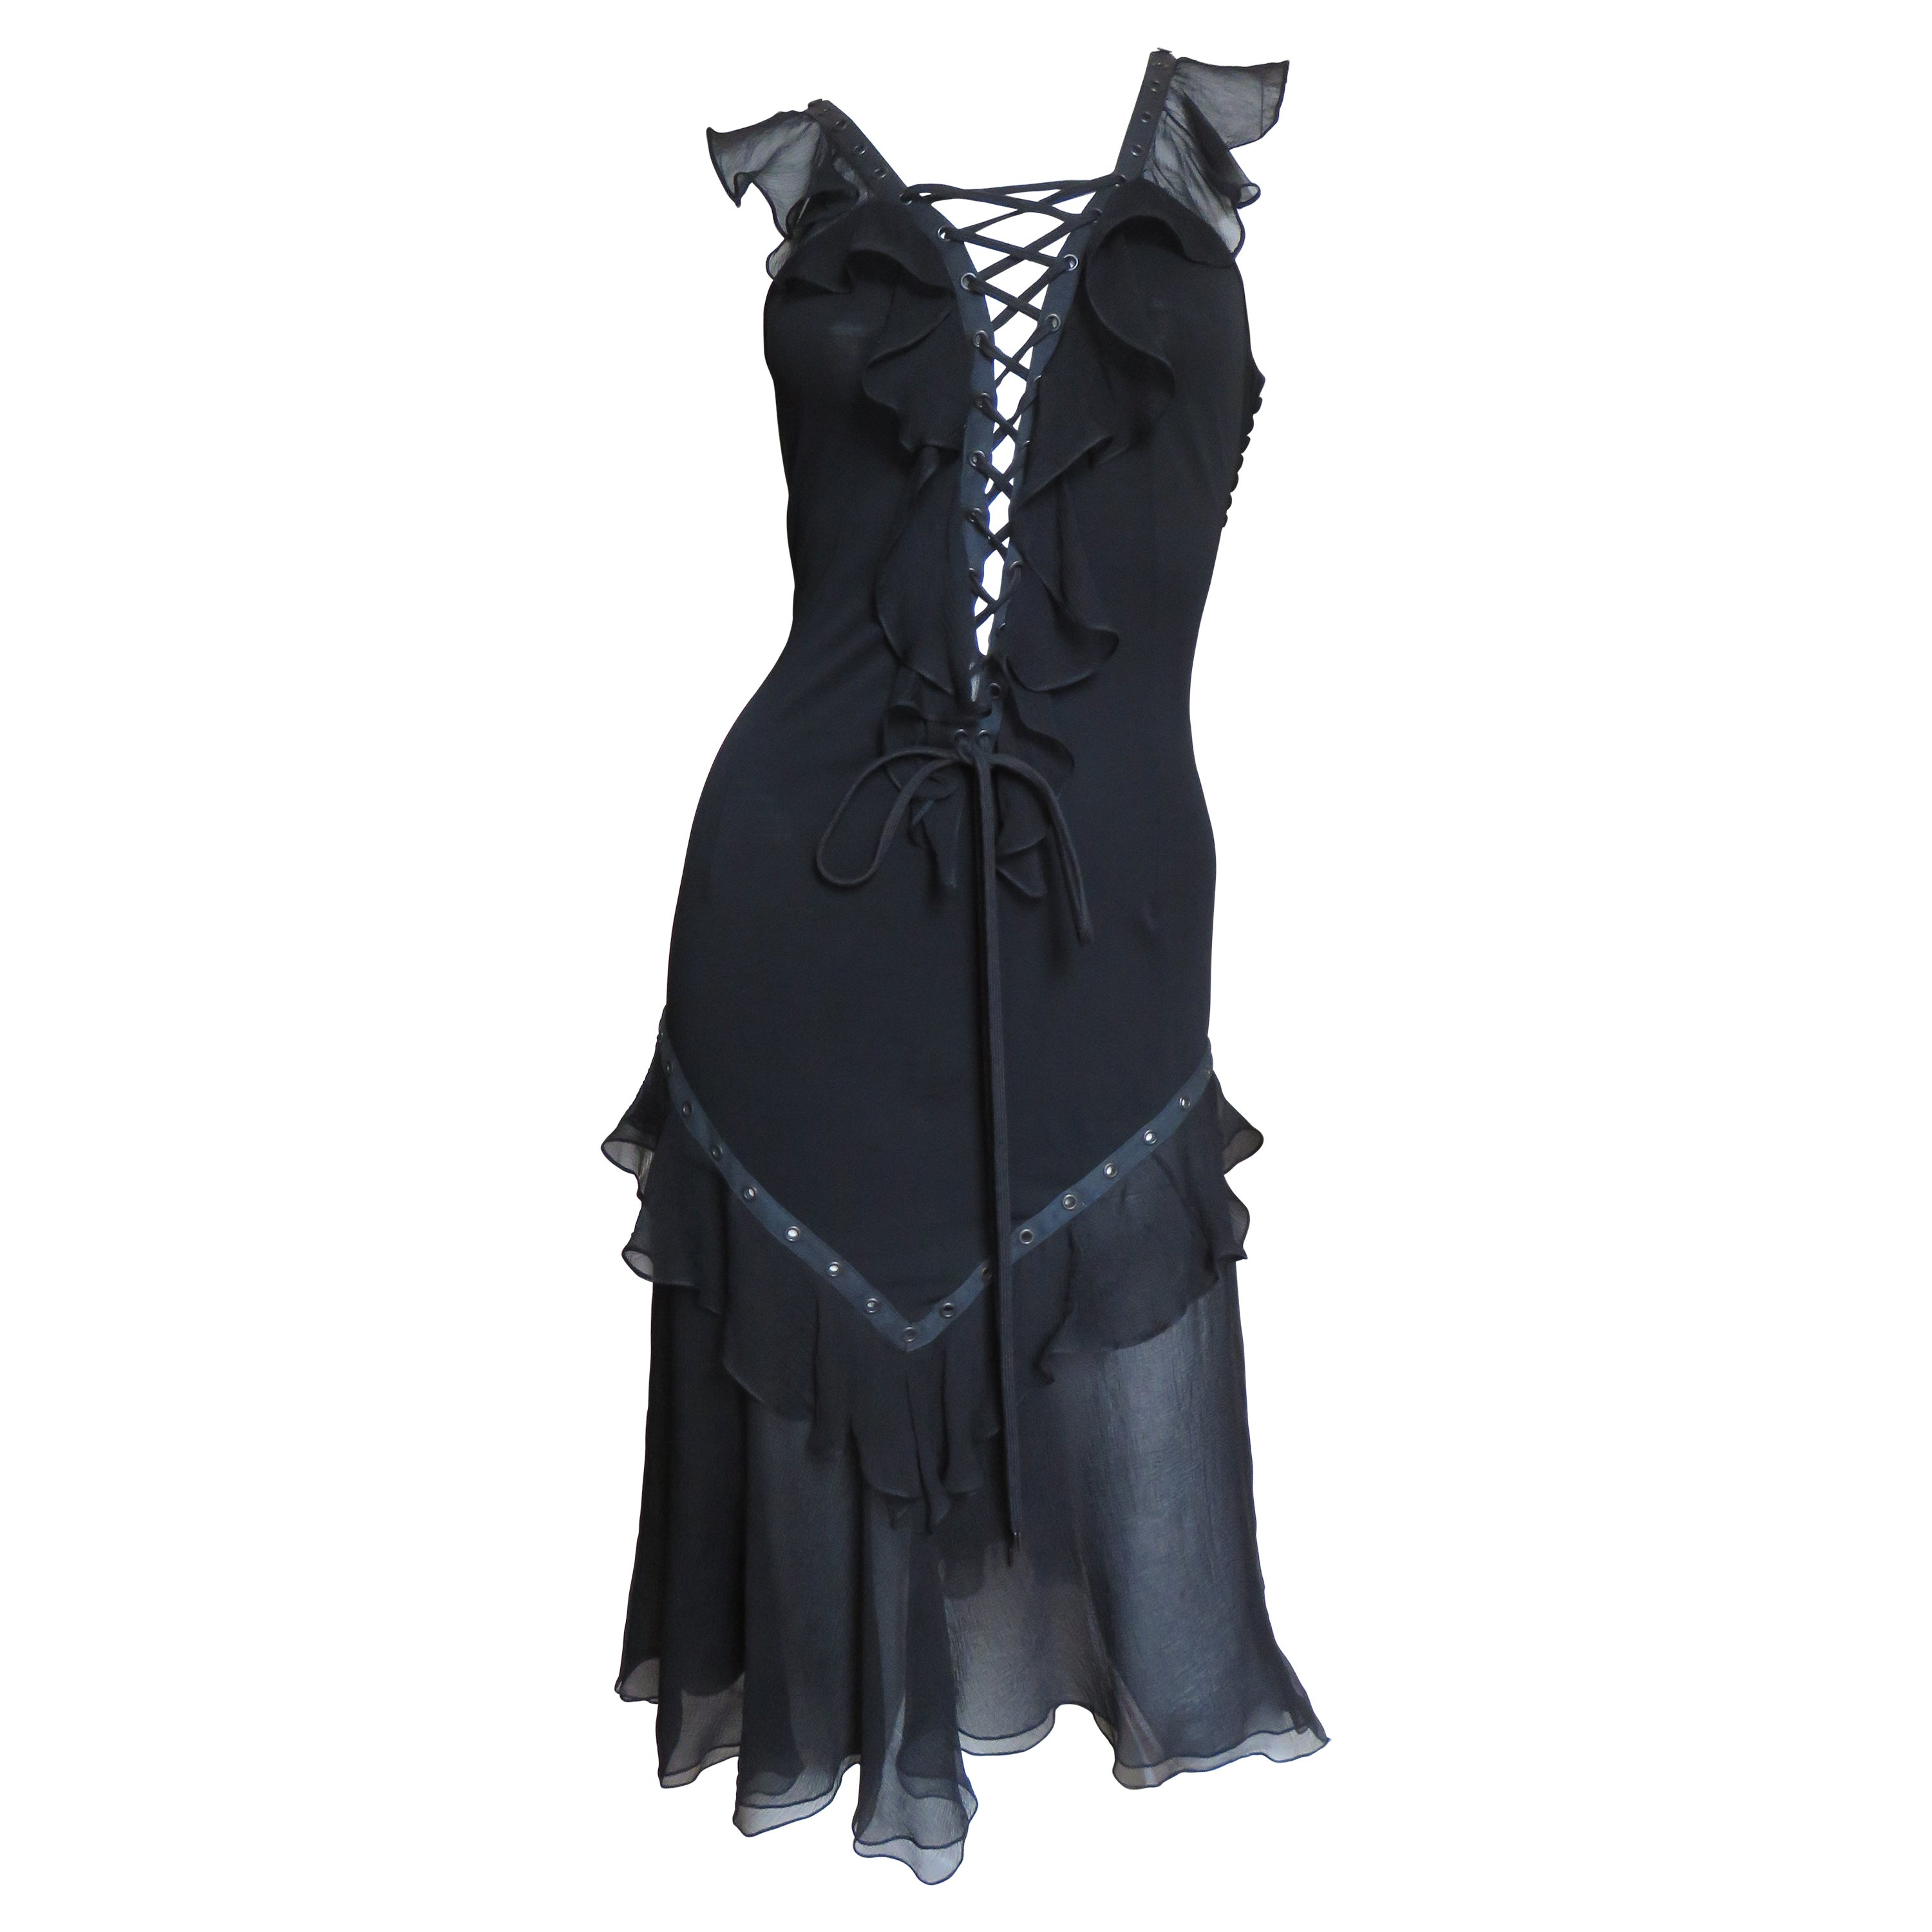 Christian Dior by John Galliano Plunge Corset Lace Up Dress